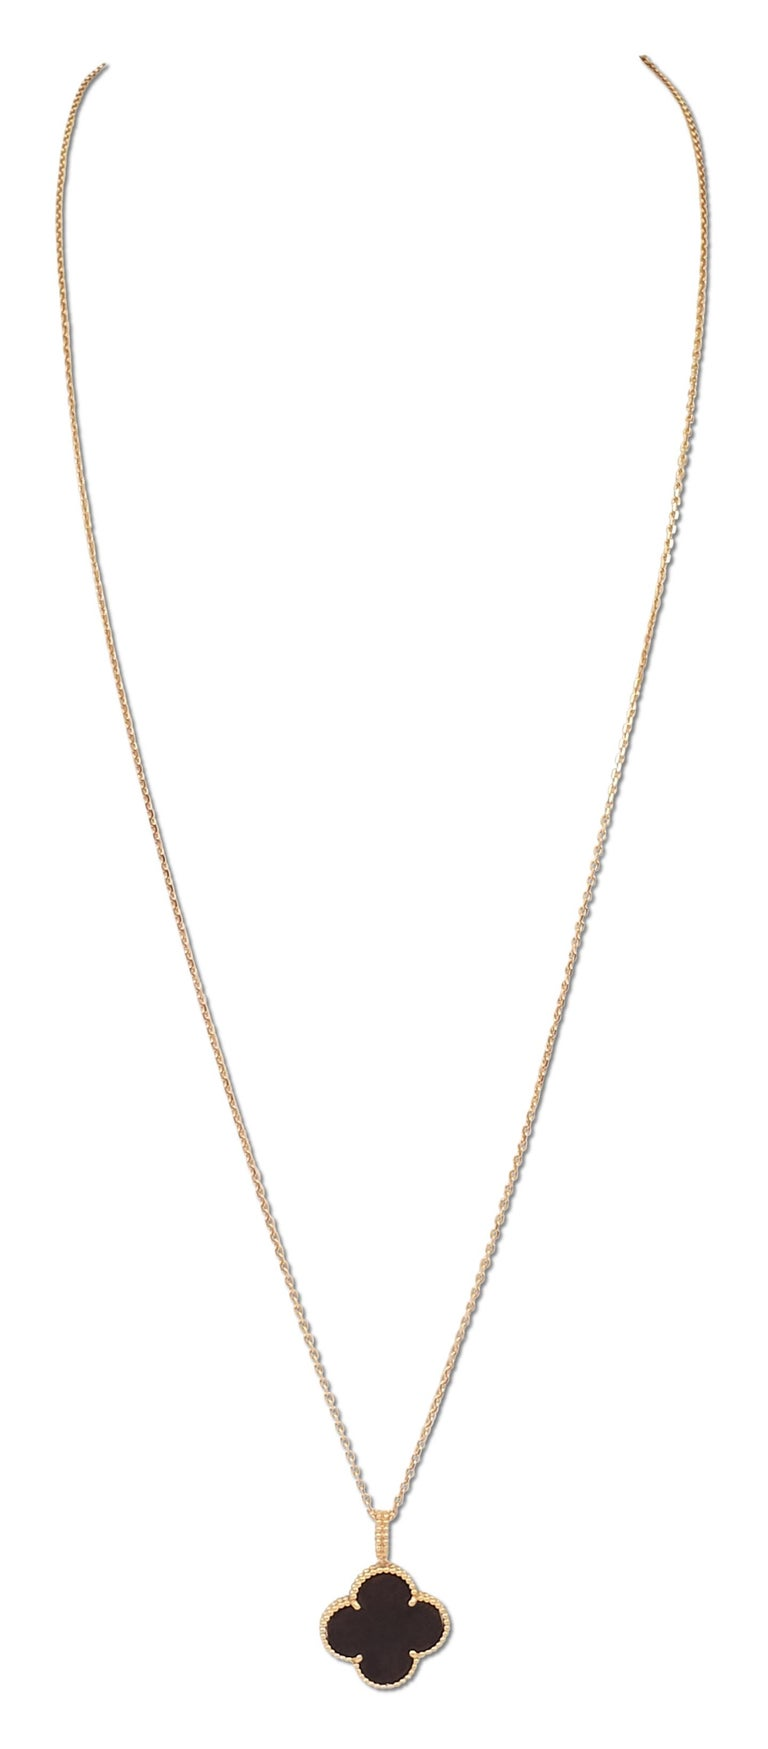 Authentic Van Cleef & Arpels Magic Alhambra long necklace features a single clover motif pendant crafted in 18 karat rose gold and set with carved wood. The pendant measures 26 x 26mm and hangs from a 90cm 18 karat rose gold chain. The necklace can